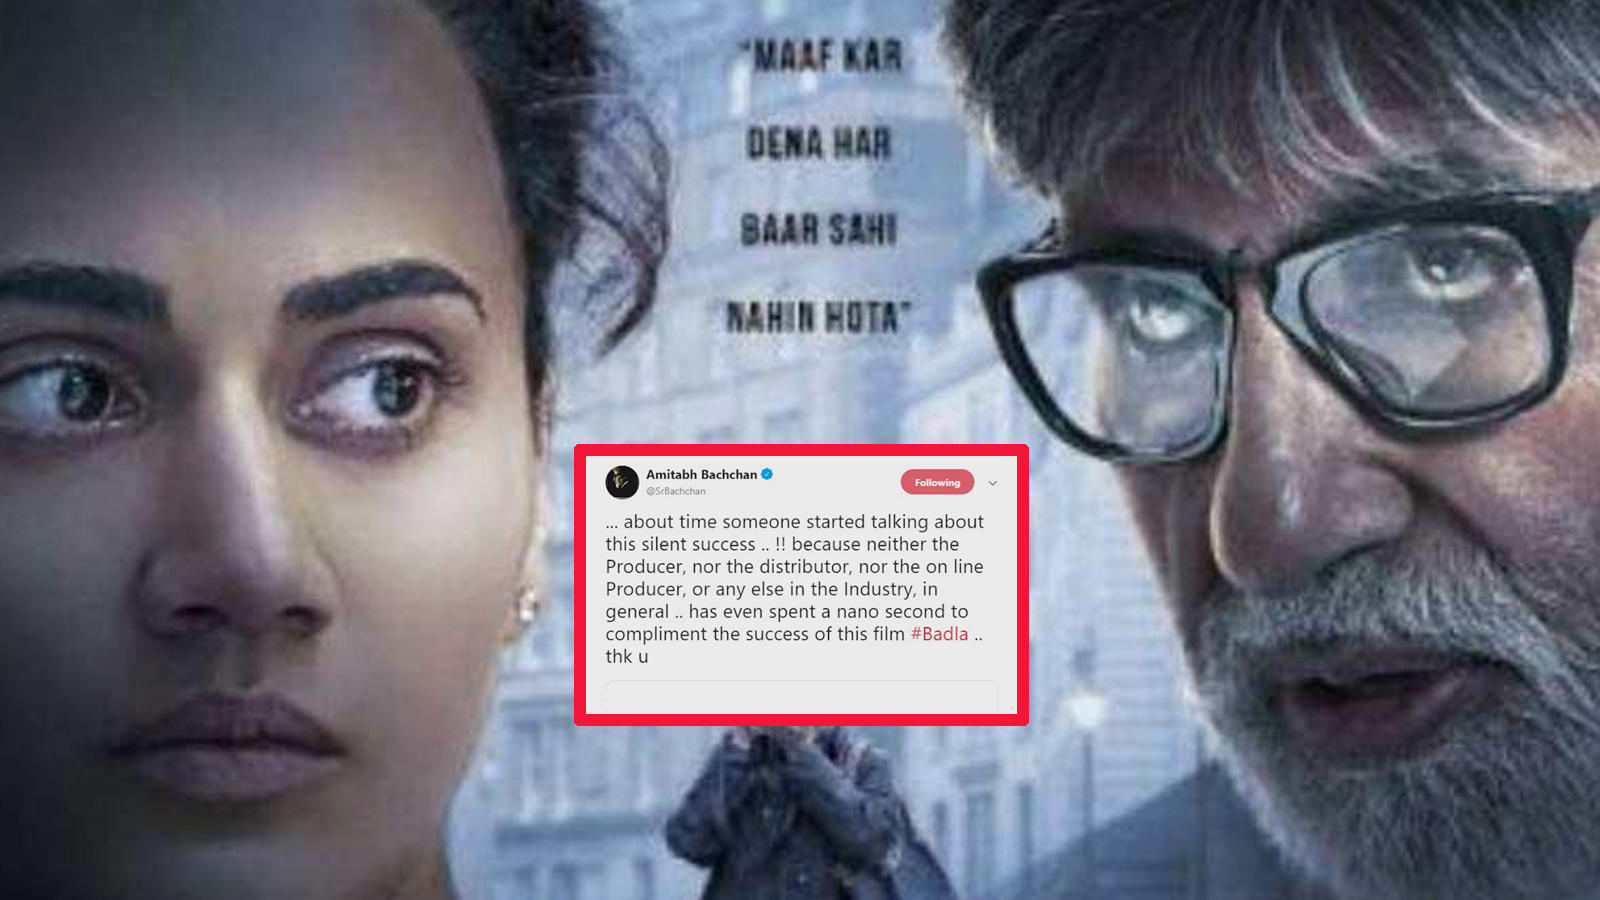 Amitabh Bachchan complains about Badla's success being ignored